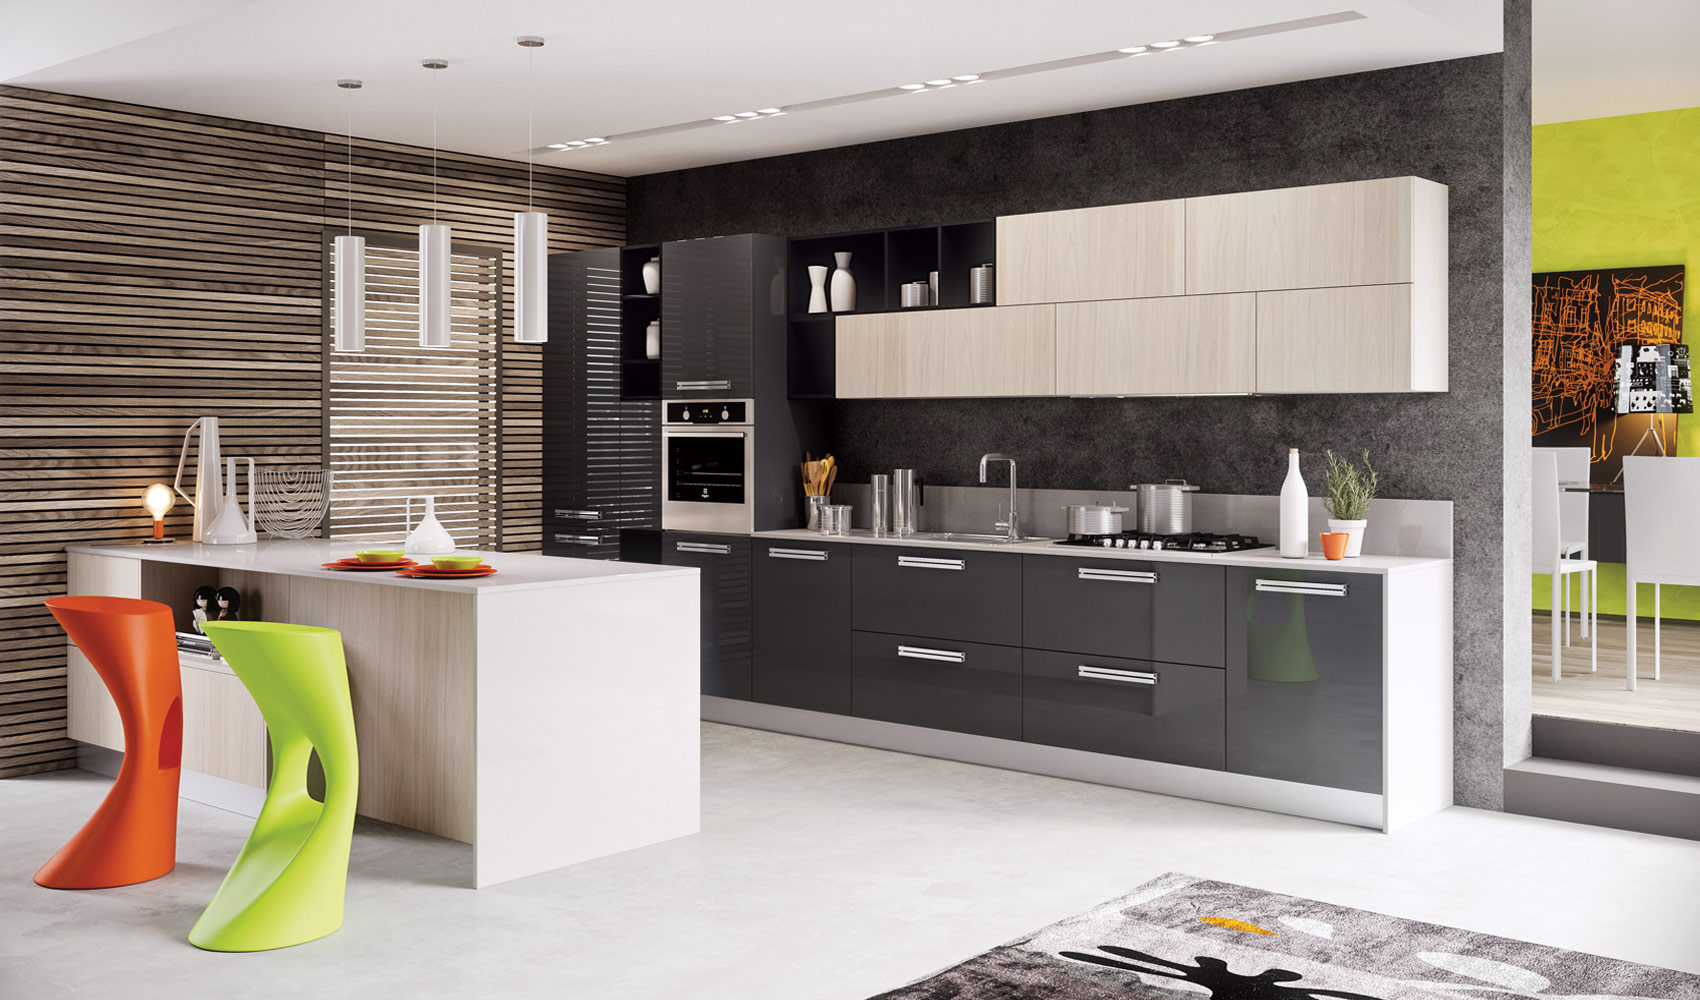 Modern Kitchen Designs kitchen designs that pop